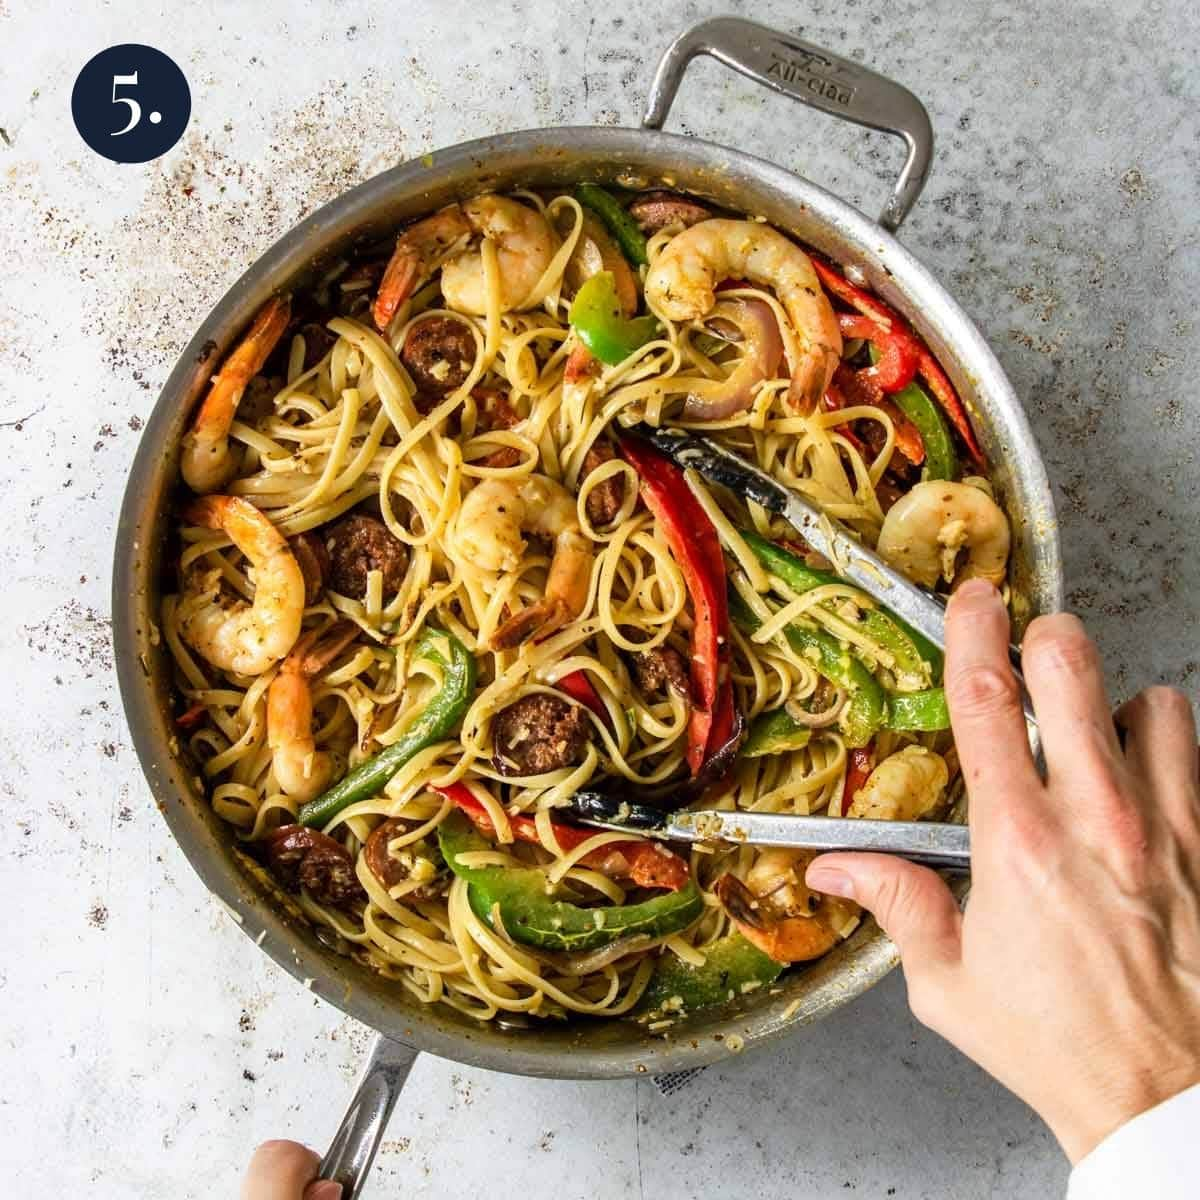 tossing pasta with shrimp, peppers, and sausage